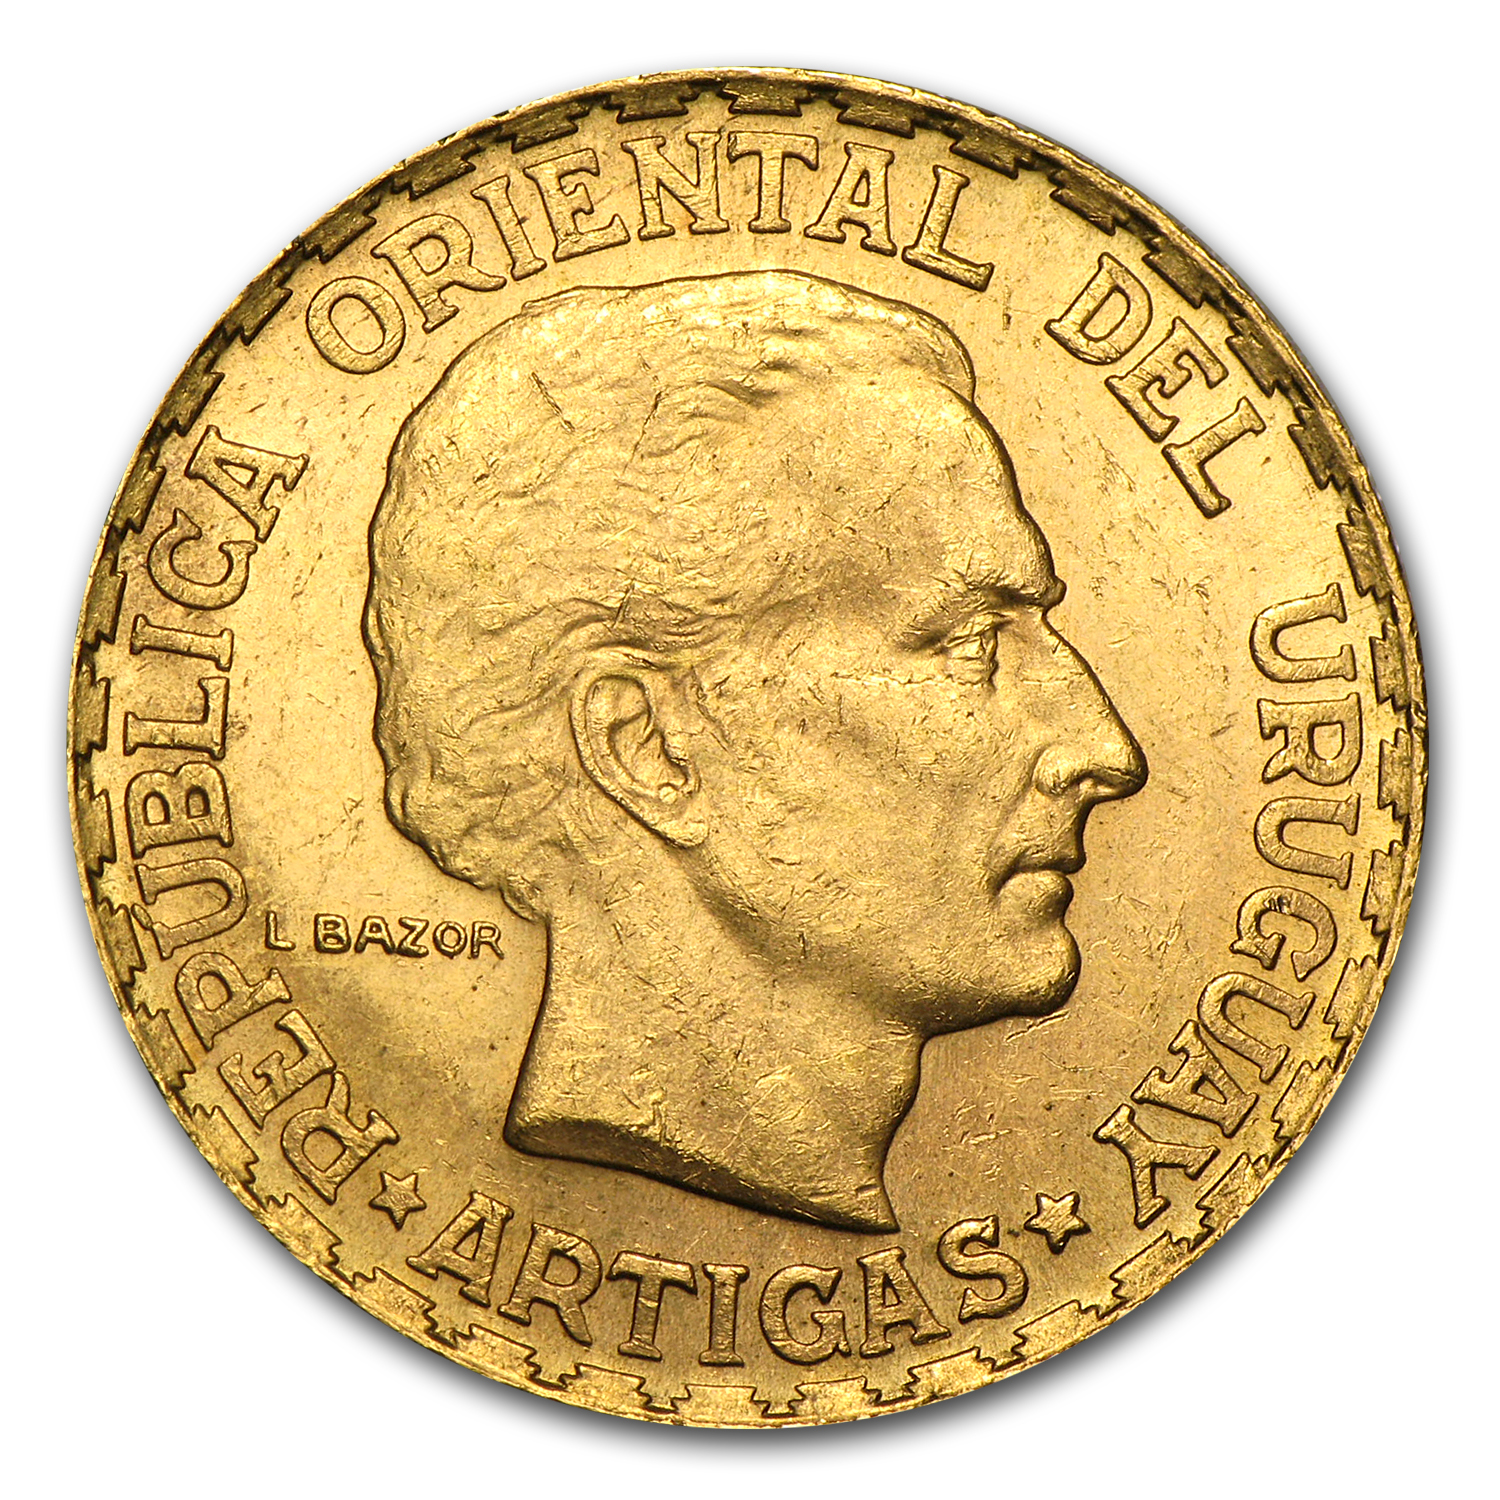 Uruguay 1930 5 Pesos Gold - EF or Better AGW .2501